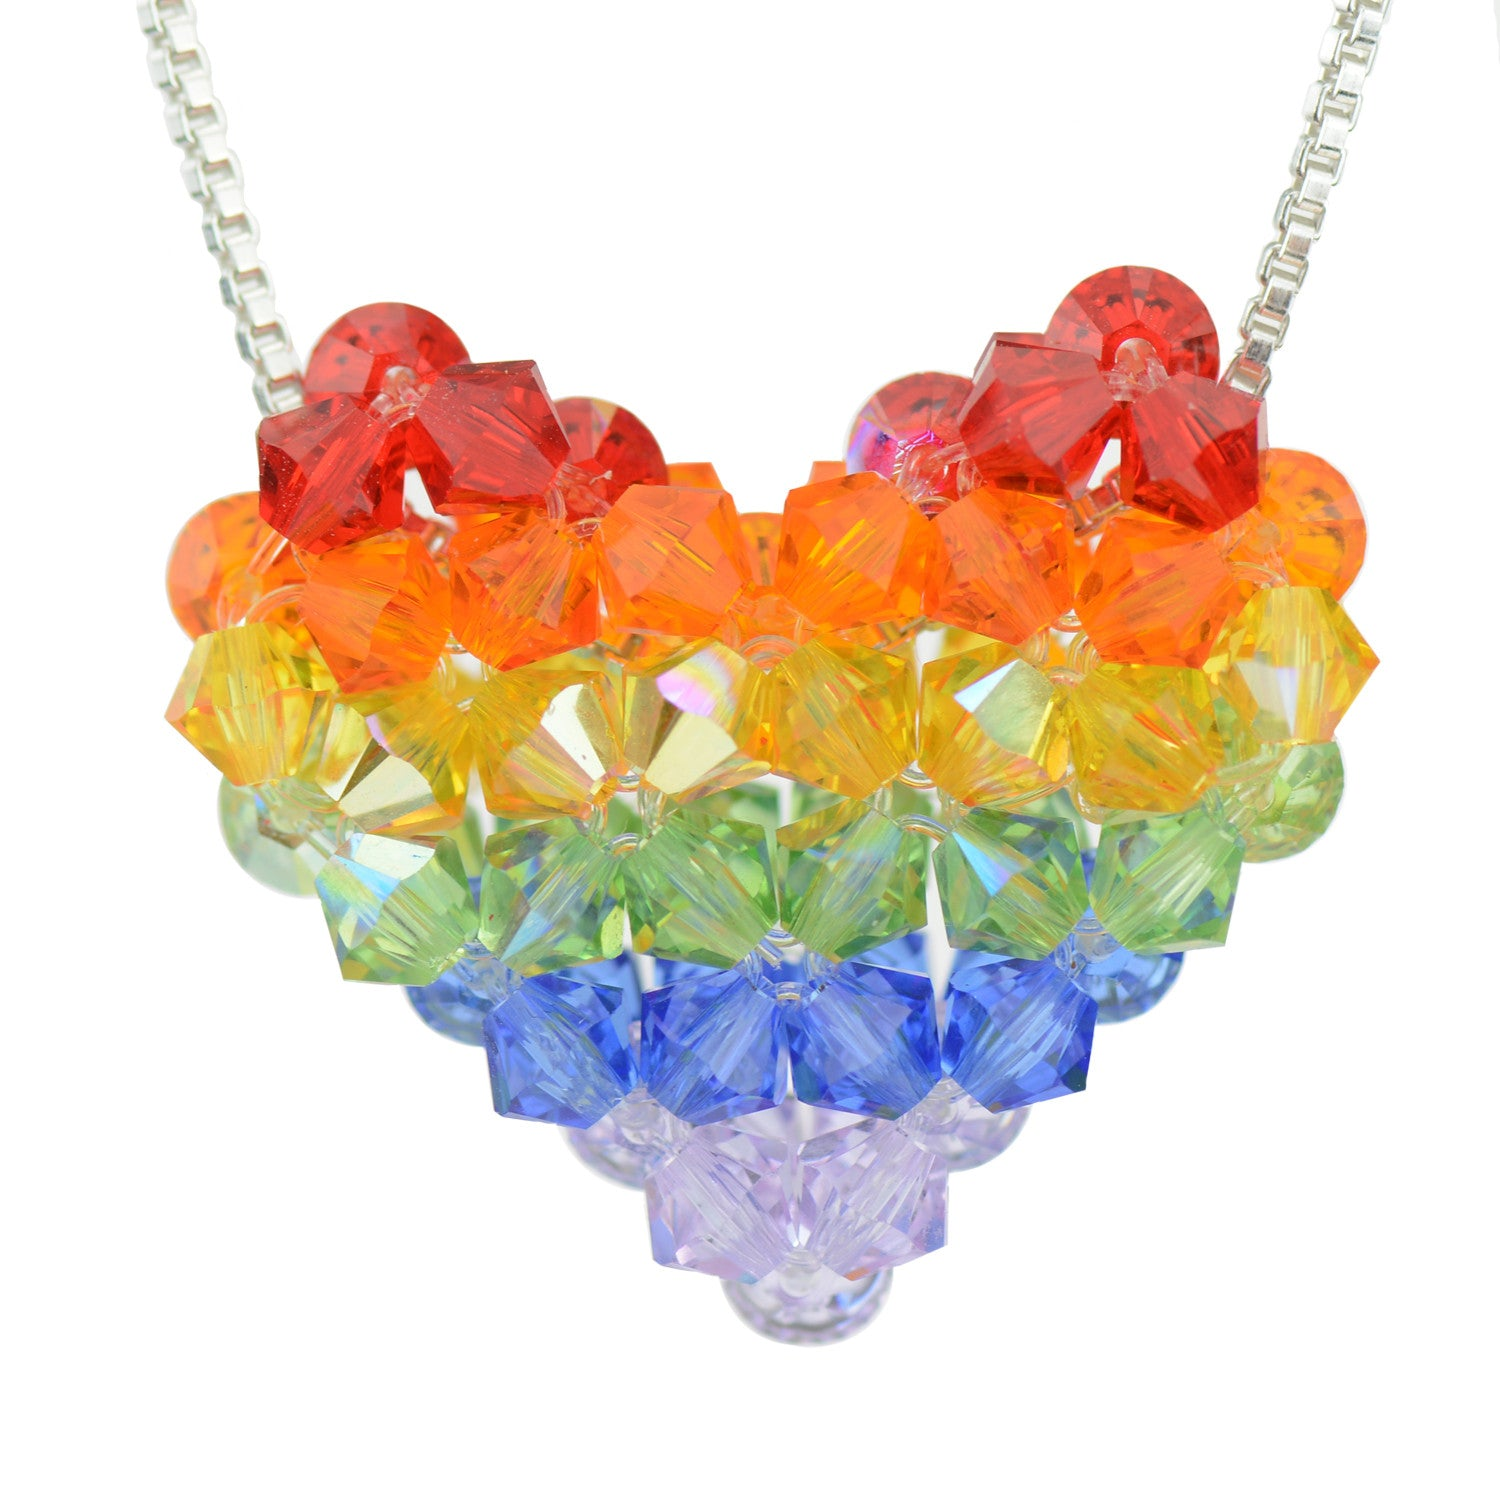 wg products yg rainbow collection ef necklace